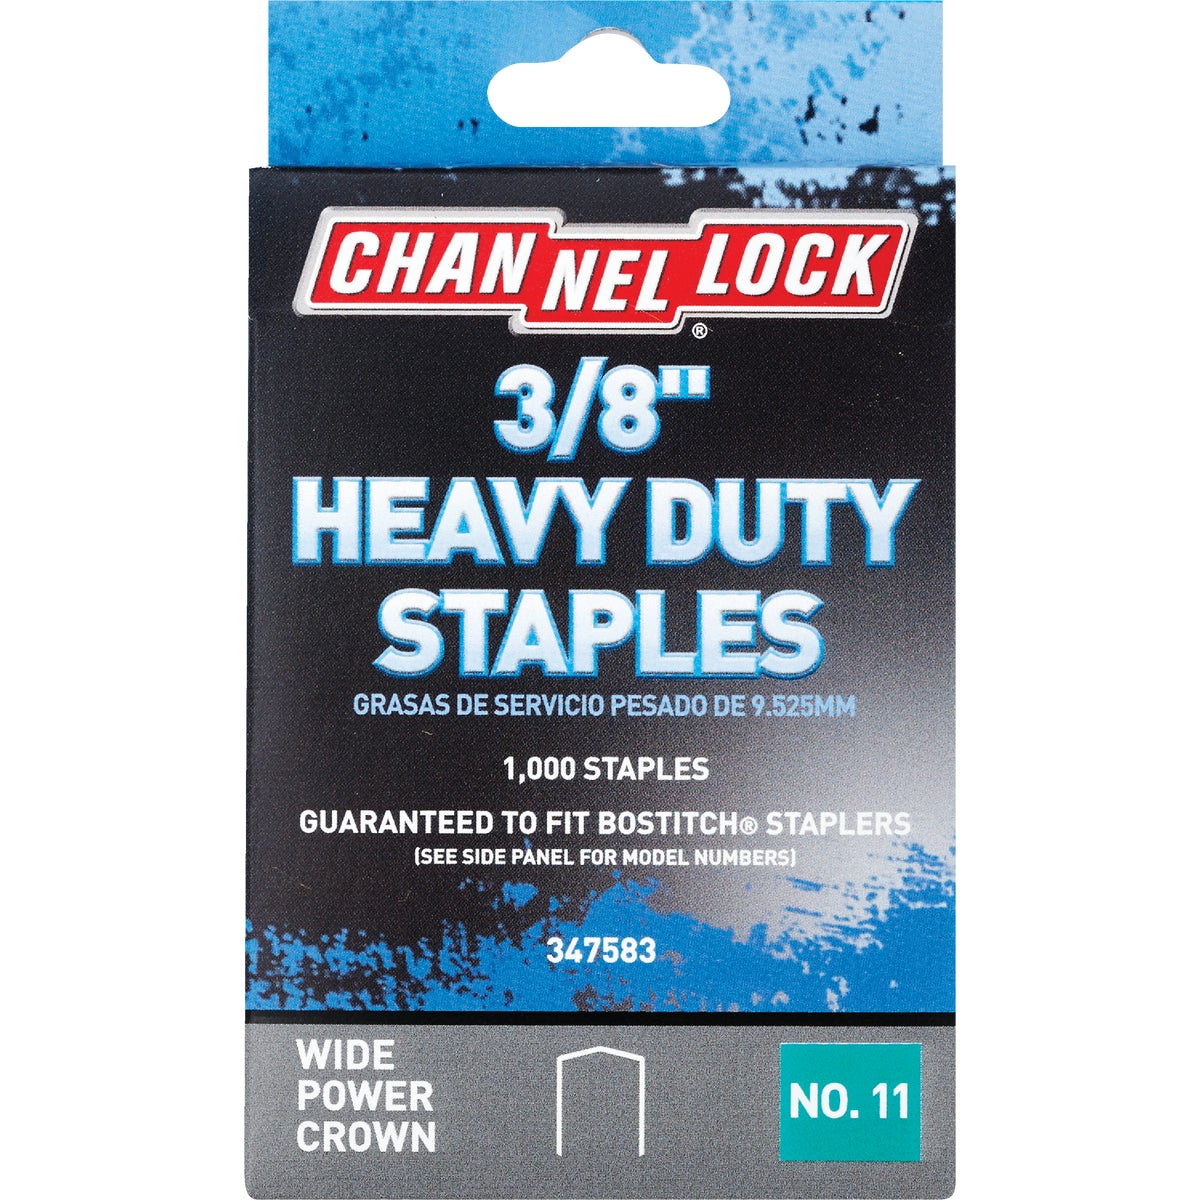 "3/8"" STAPLE - 347583 by Do it Best"